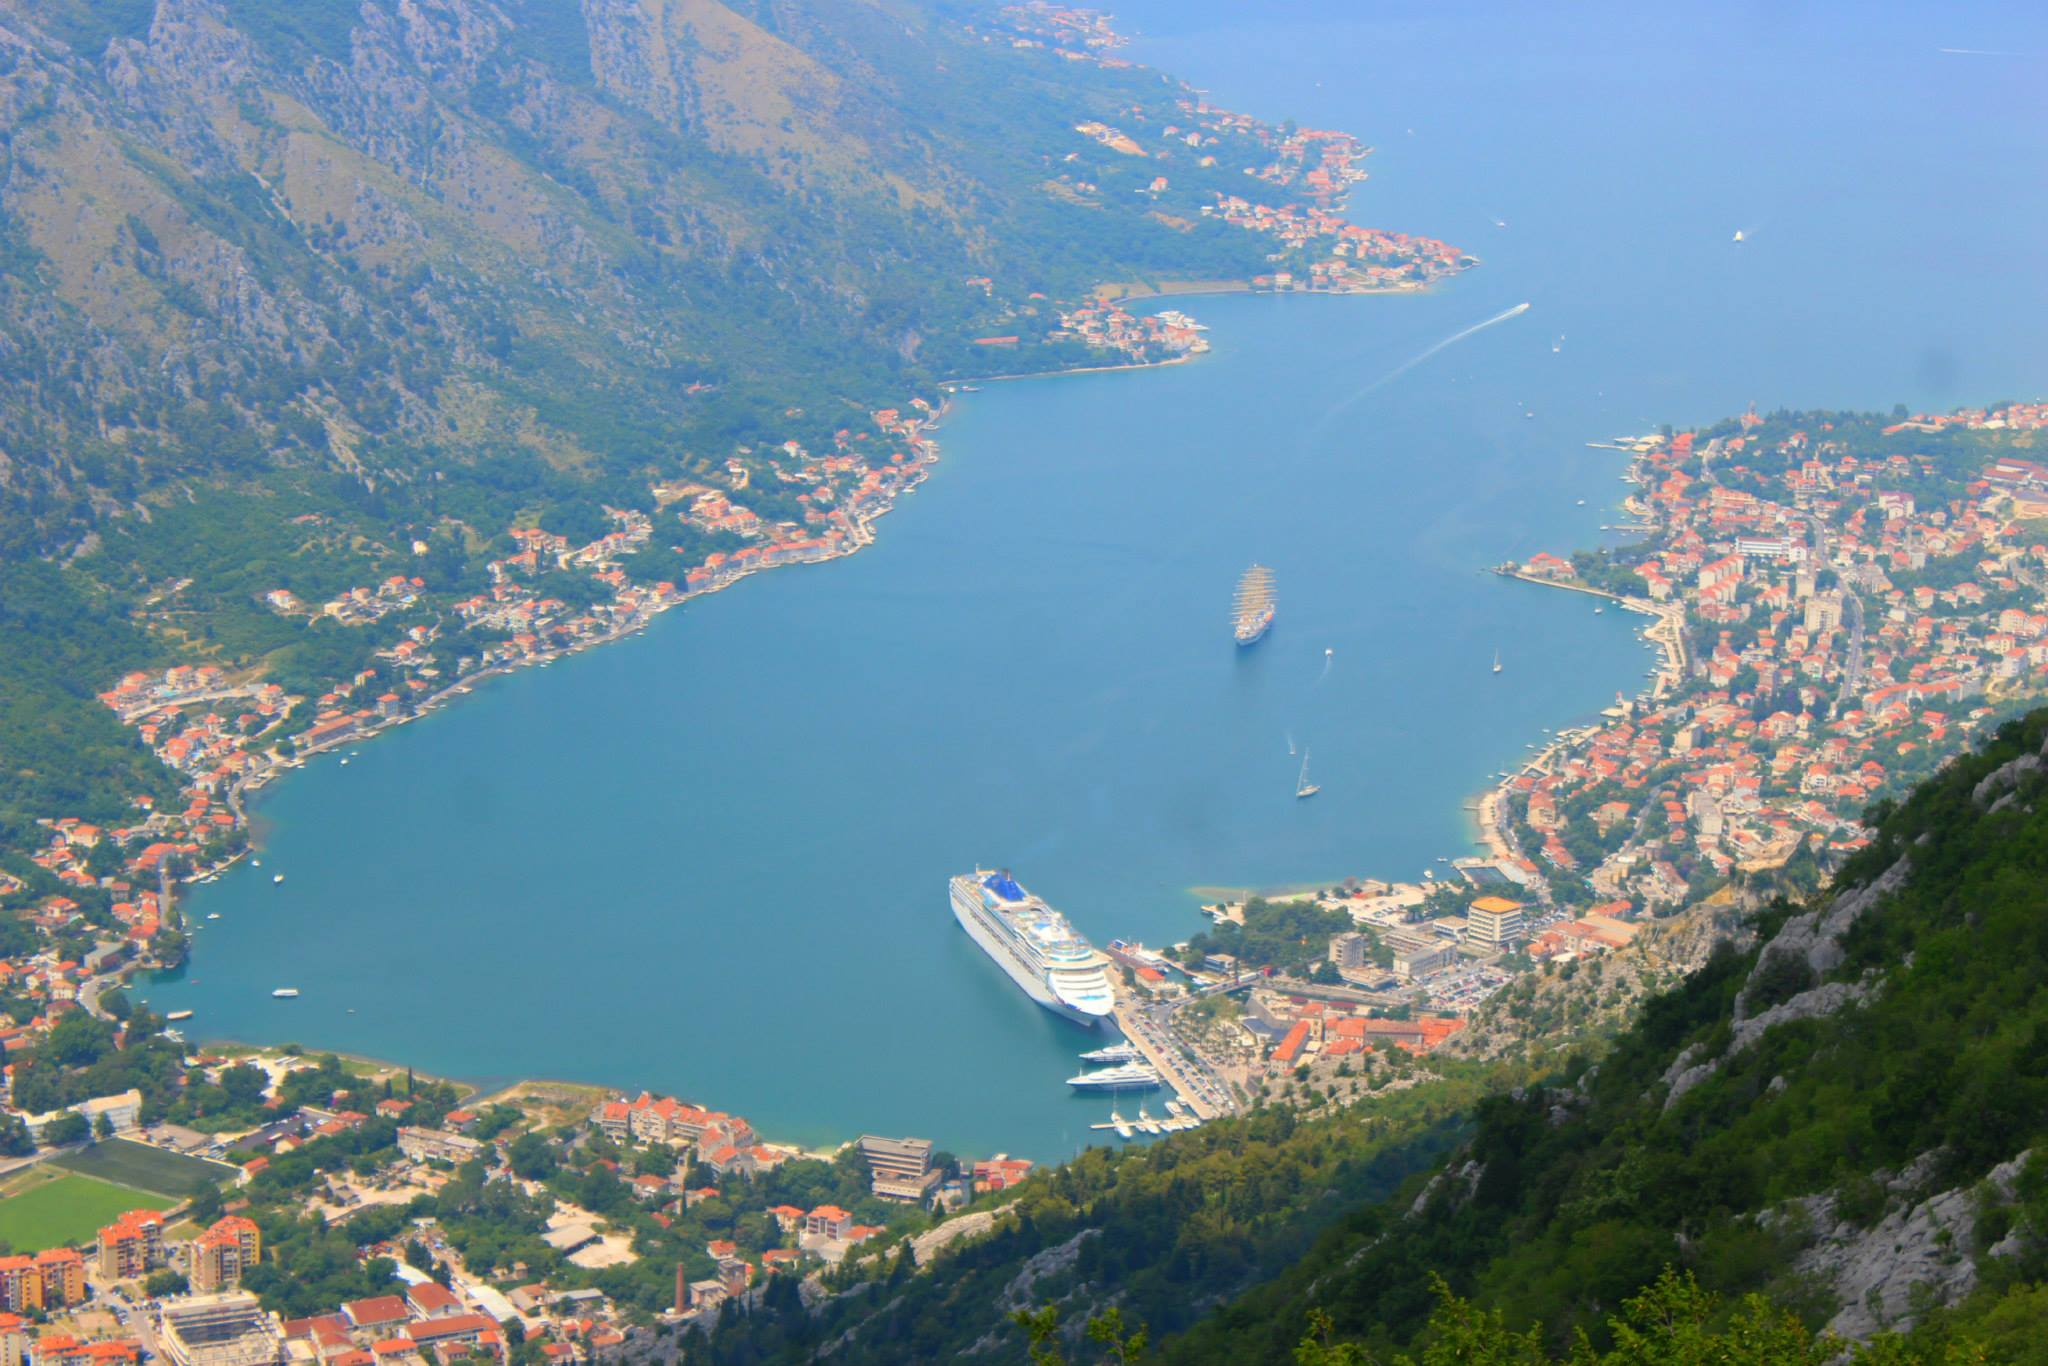 Excursion to the Bay of Kotor